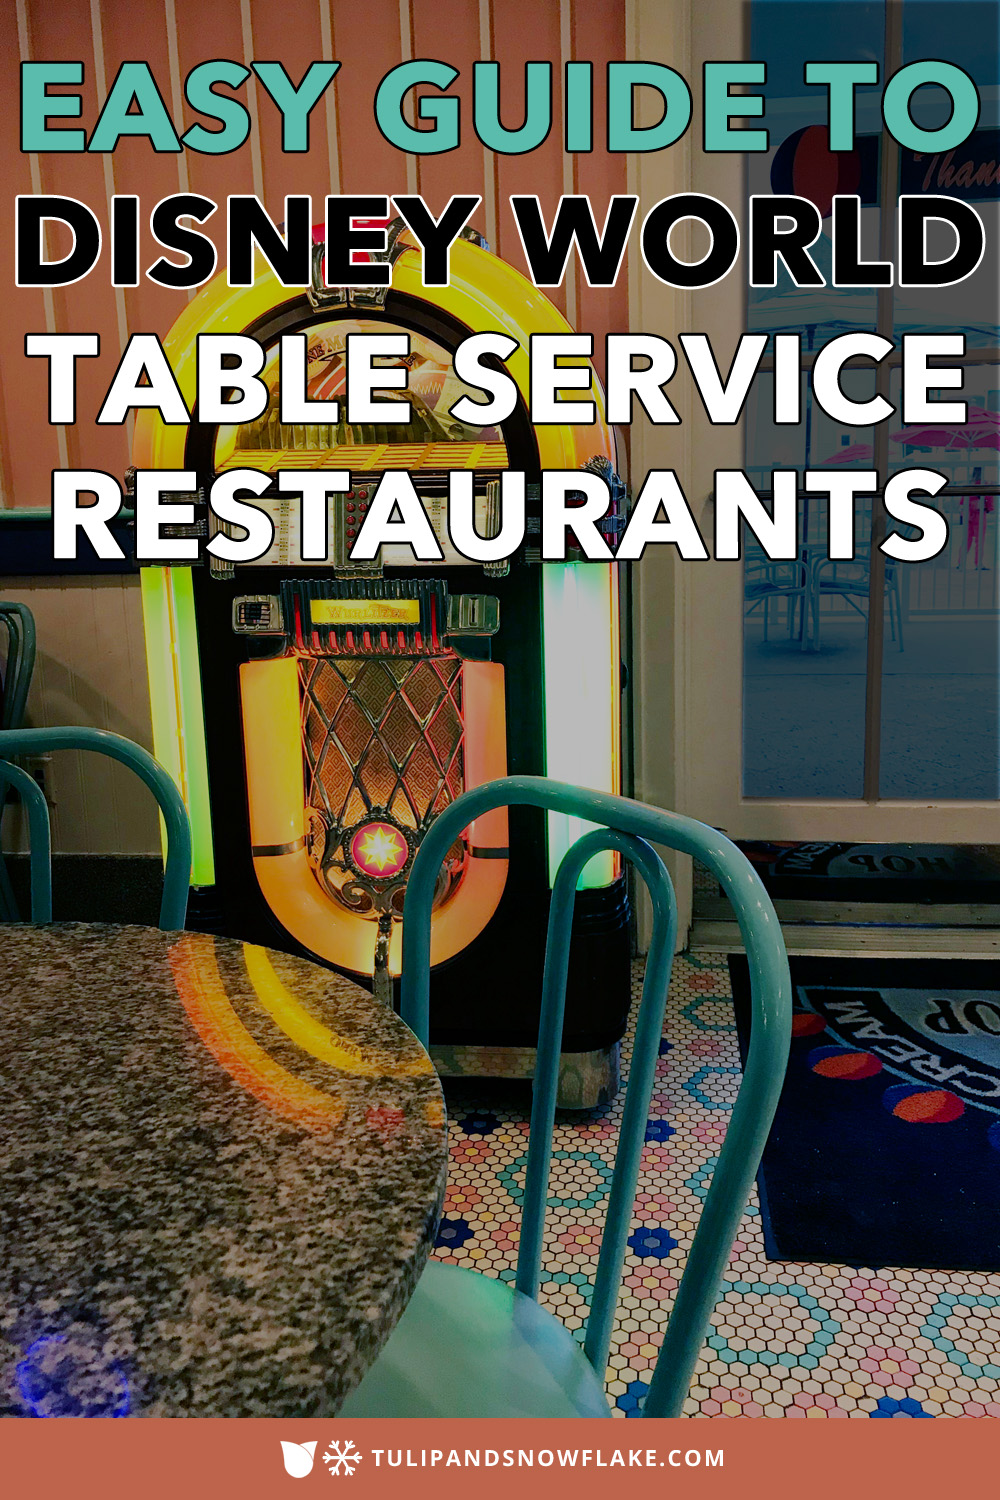 Disney World Table Service Restaurants